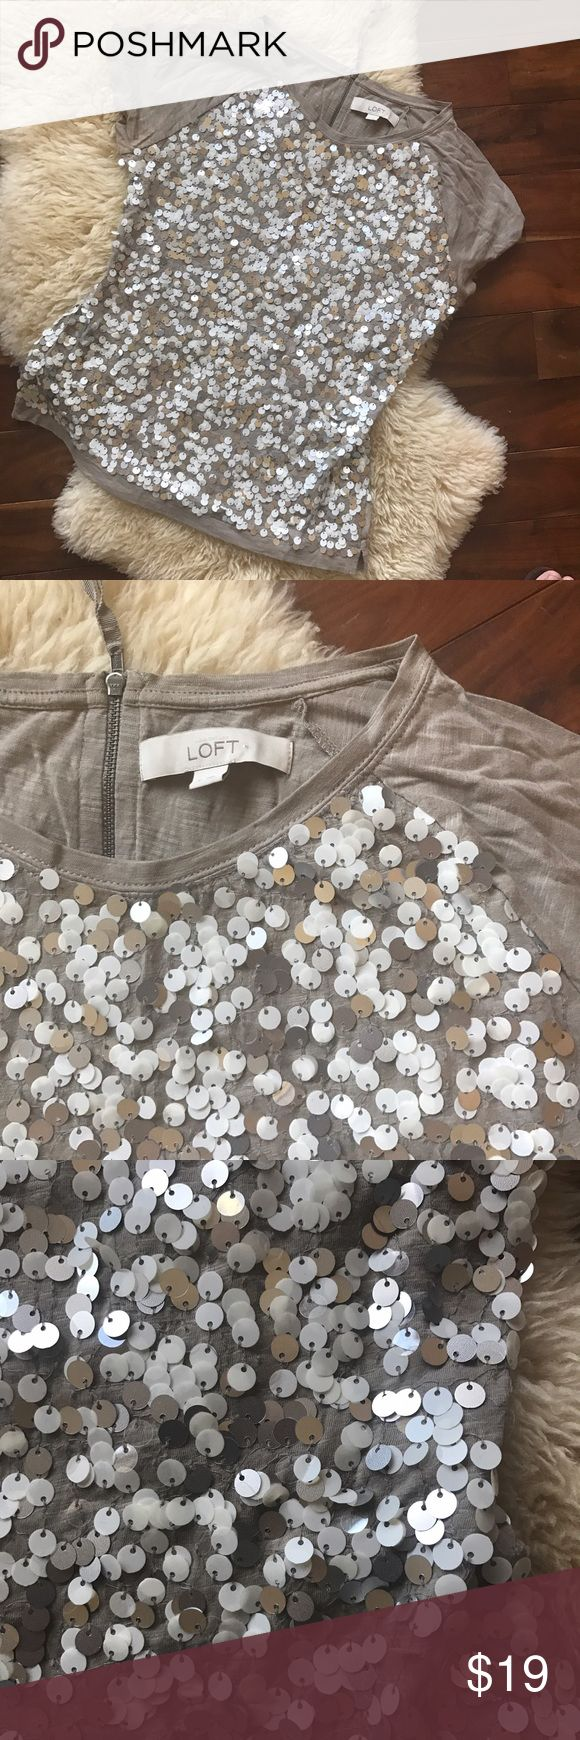 ✨✨Ann Taylor Loft Mermaid Scales T-shirt ✨✨ Very pretty neutral beige t-shirt with mermaid scale sequin on the front. Beautiful for summer! Zip back. Comfy and light weight. LOFT Tops Tees - Short Sleeve